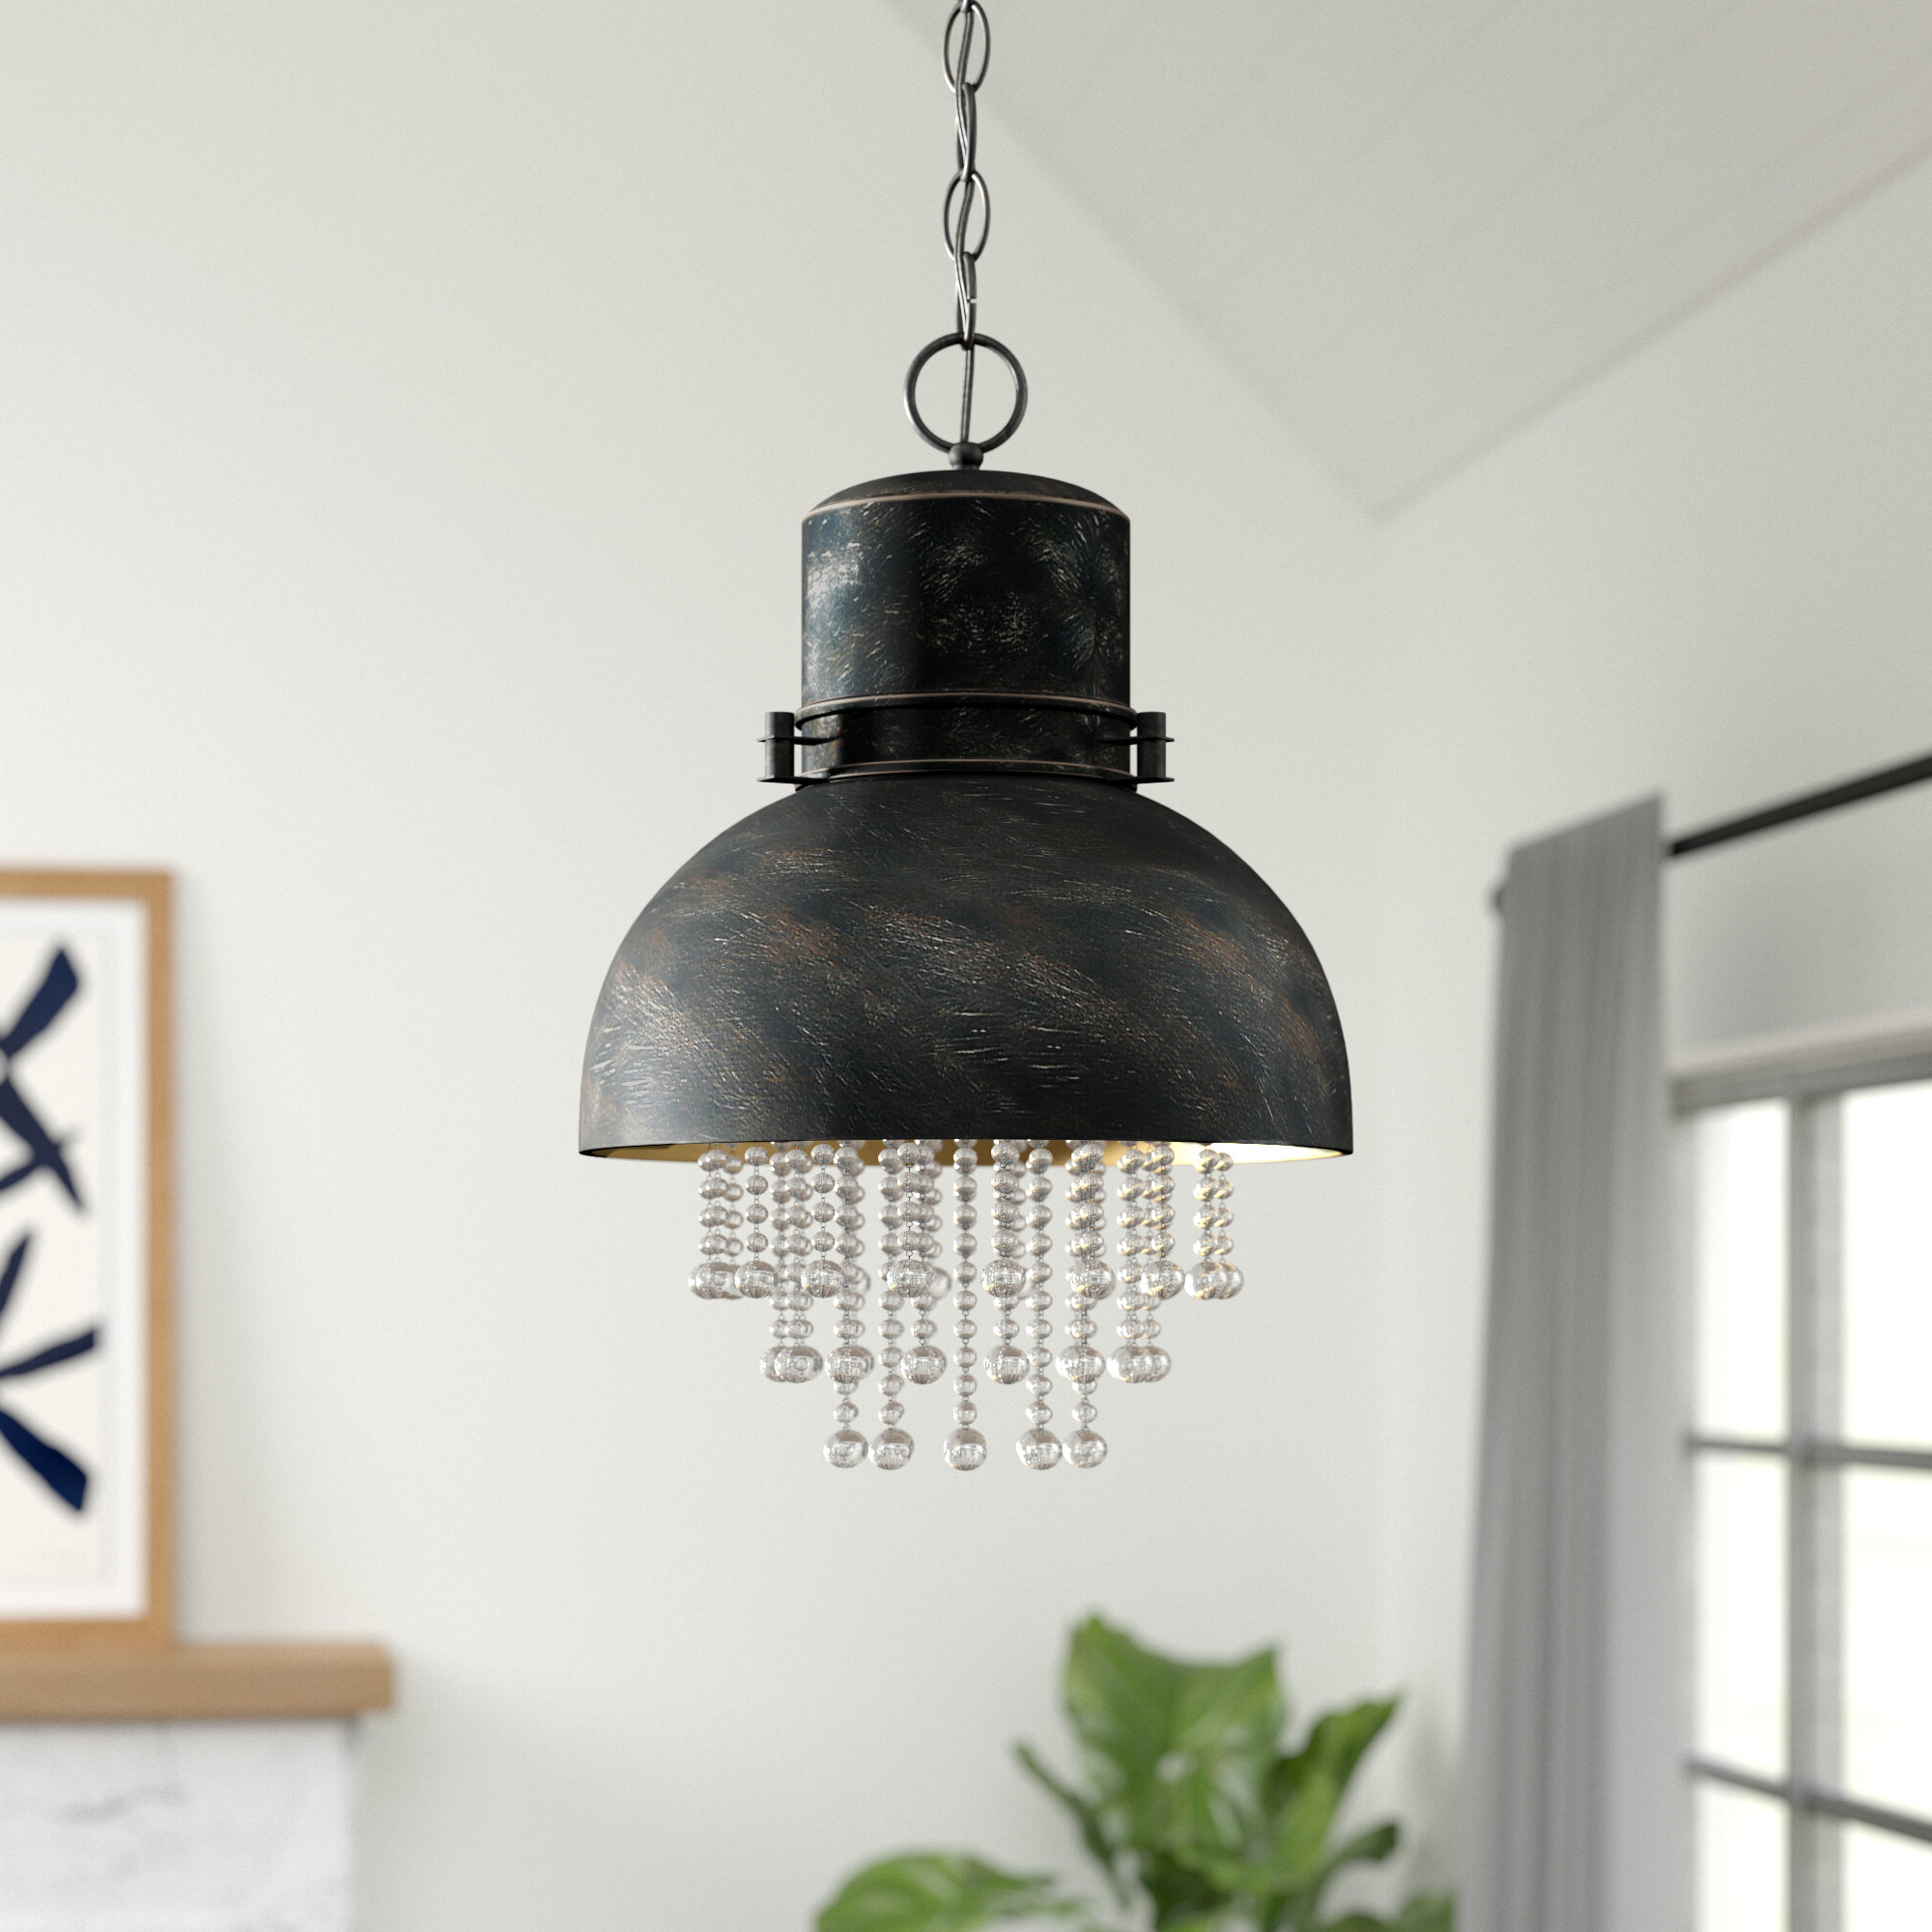 2019 Southlake 1 Light Single Dome Pendants Throughout Monadnock 1 Light Single Dome Pendant (View 1 of 20)